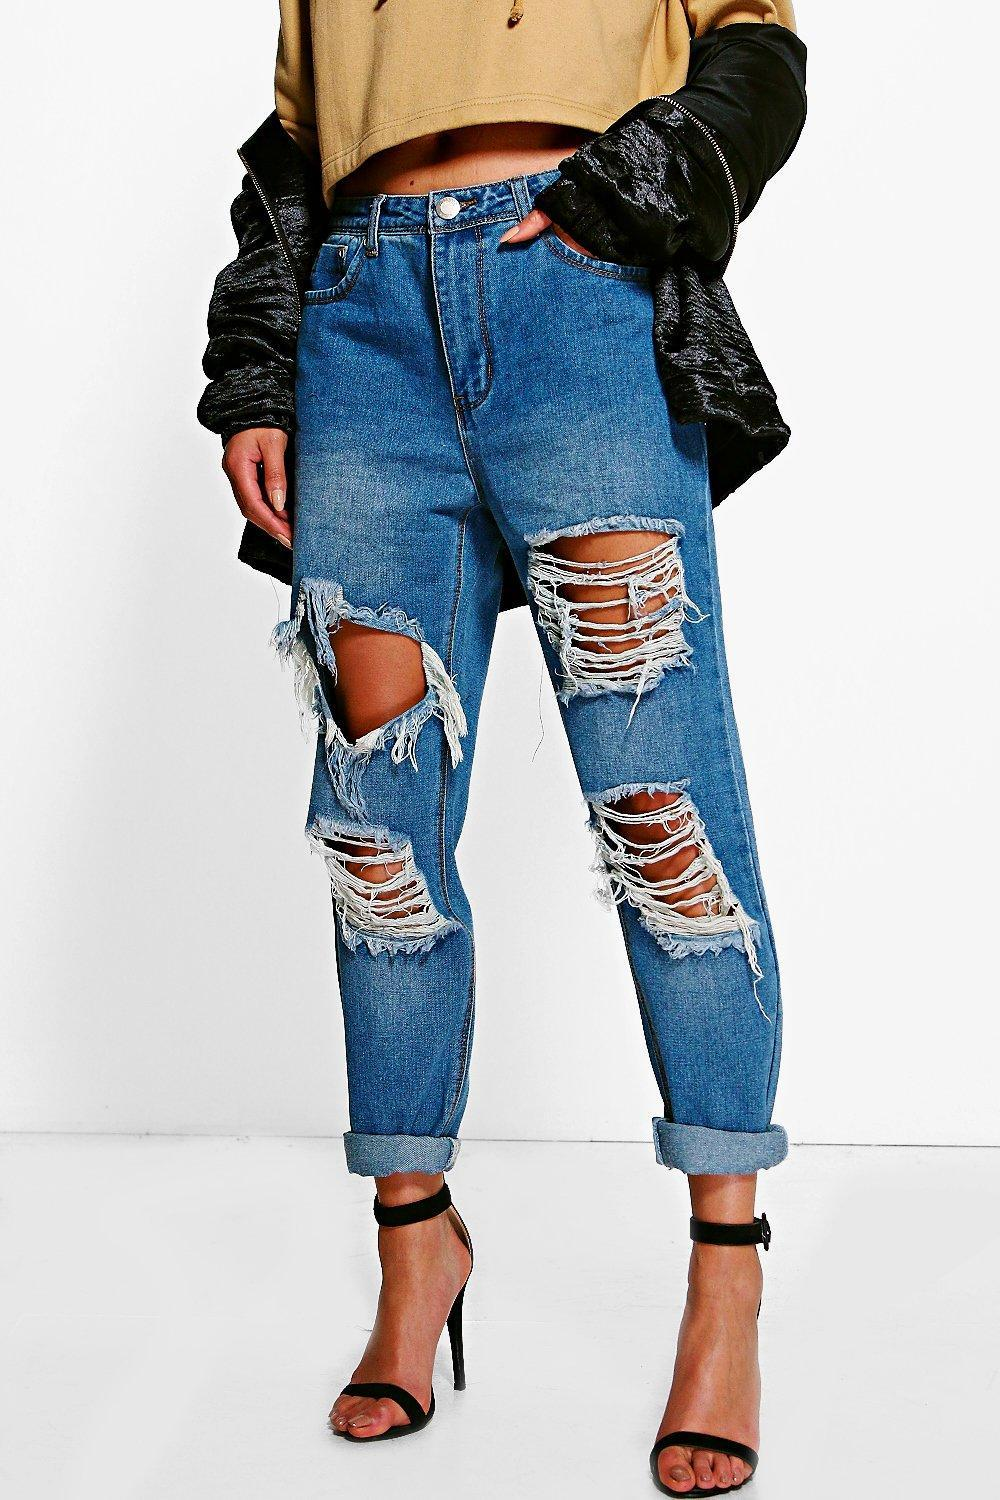 bfbce8030c Lyst - Boohoo Distressed Low Rise Boyfriend Jeans in Blue